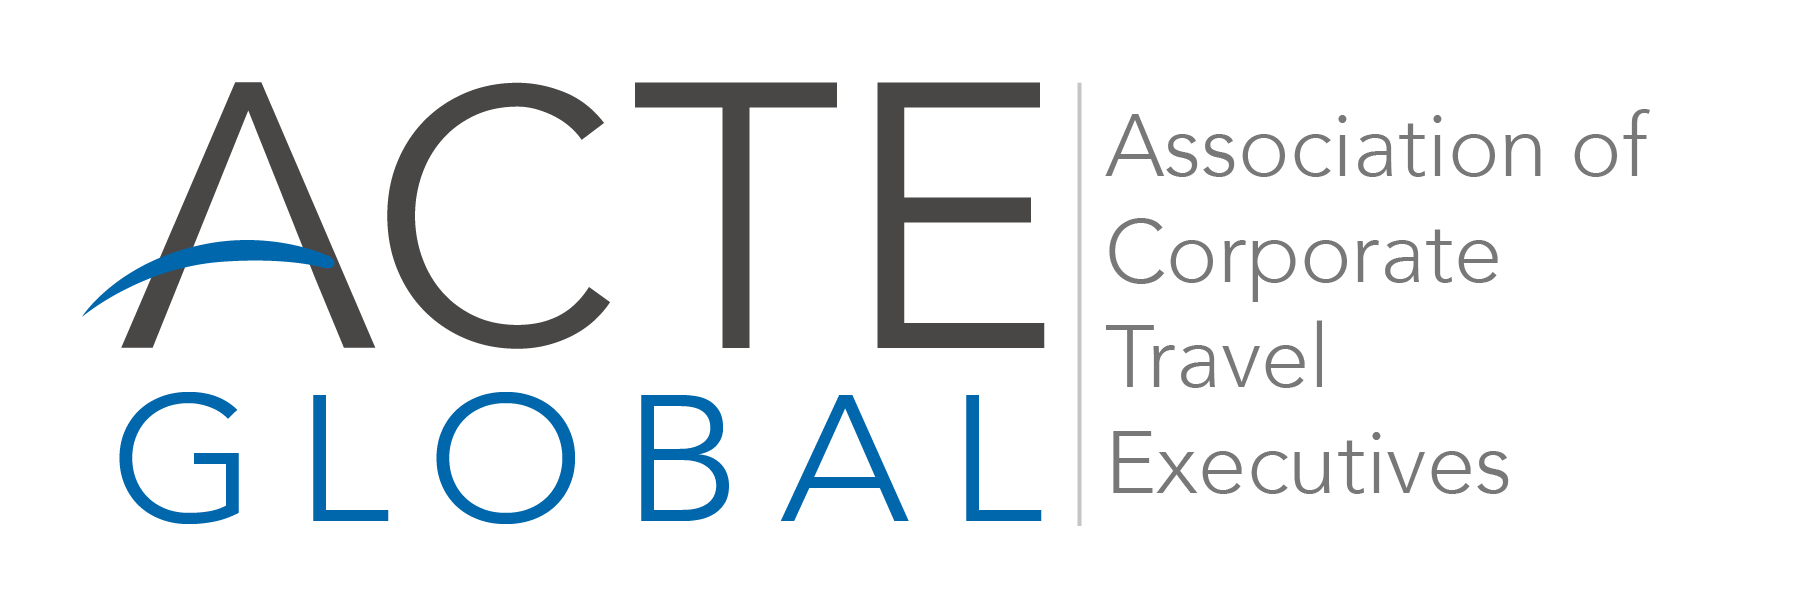 The Association of Corporate Travel Executives